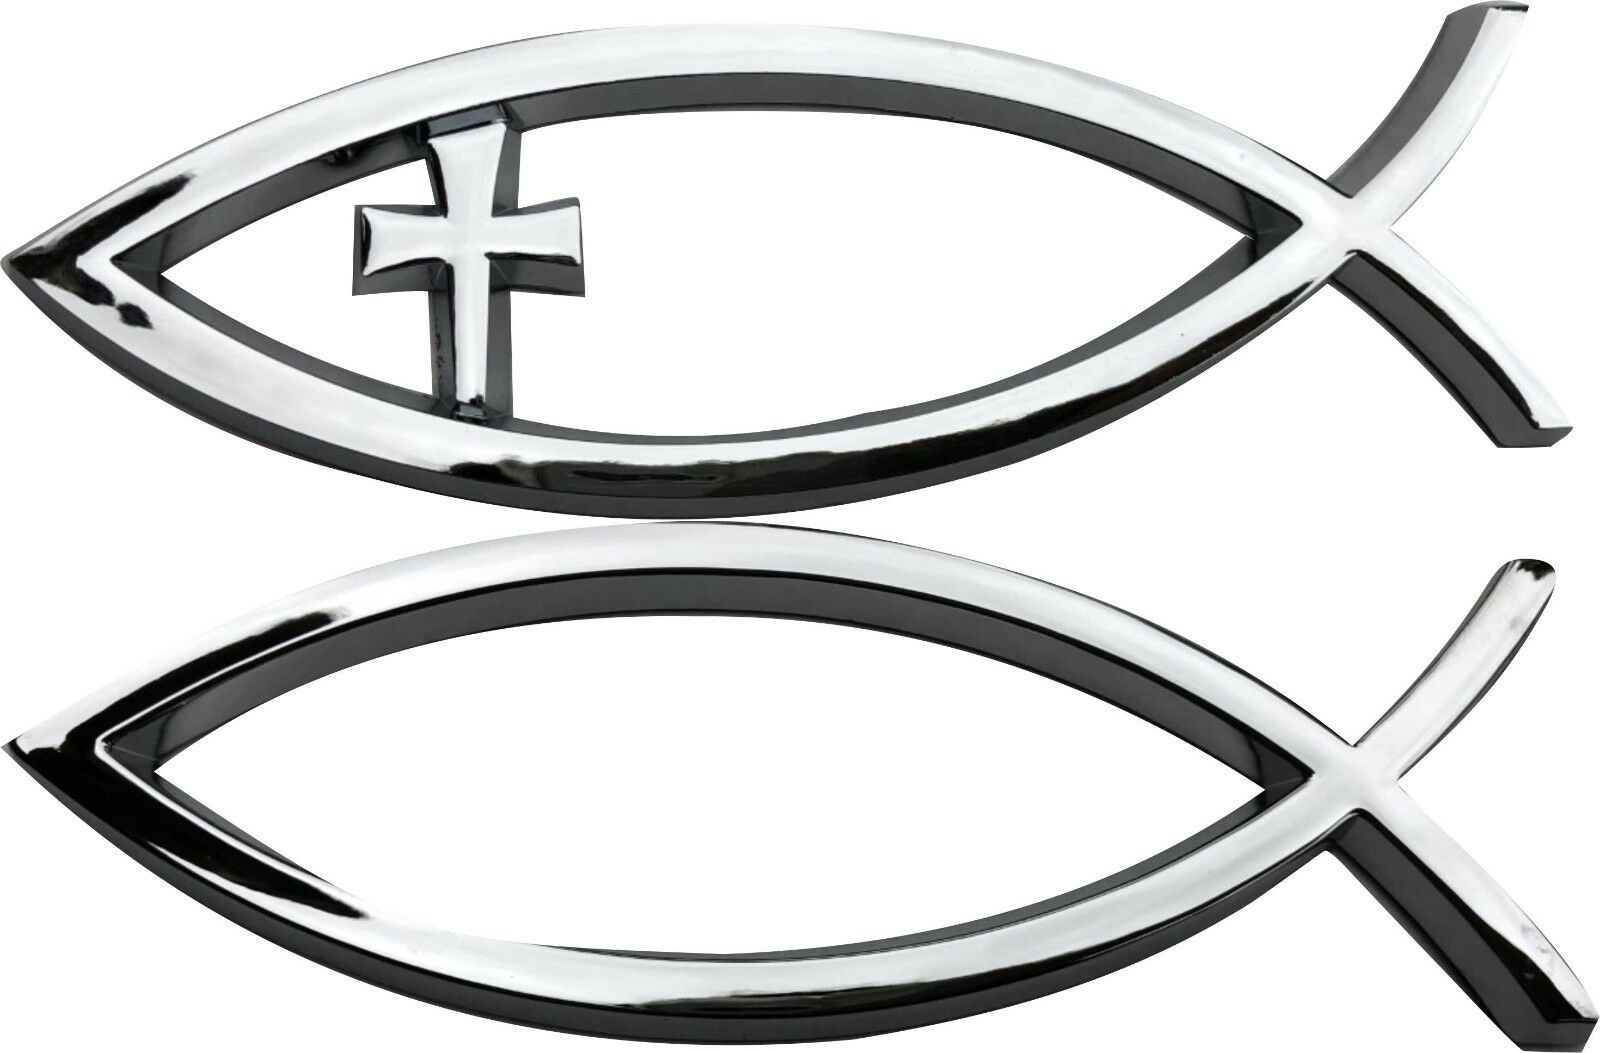 3d Car Chrome Decal Sticker Cross God Fish Jesus Christian Faith